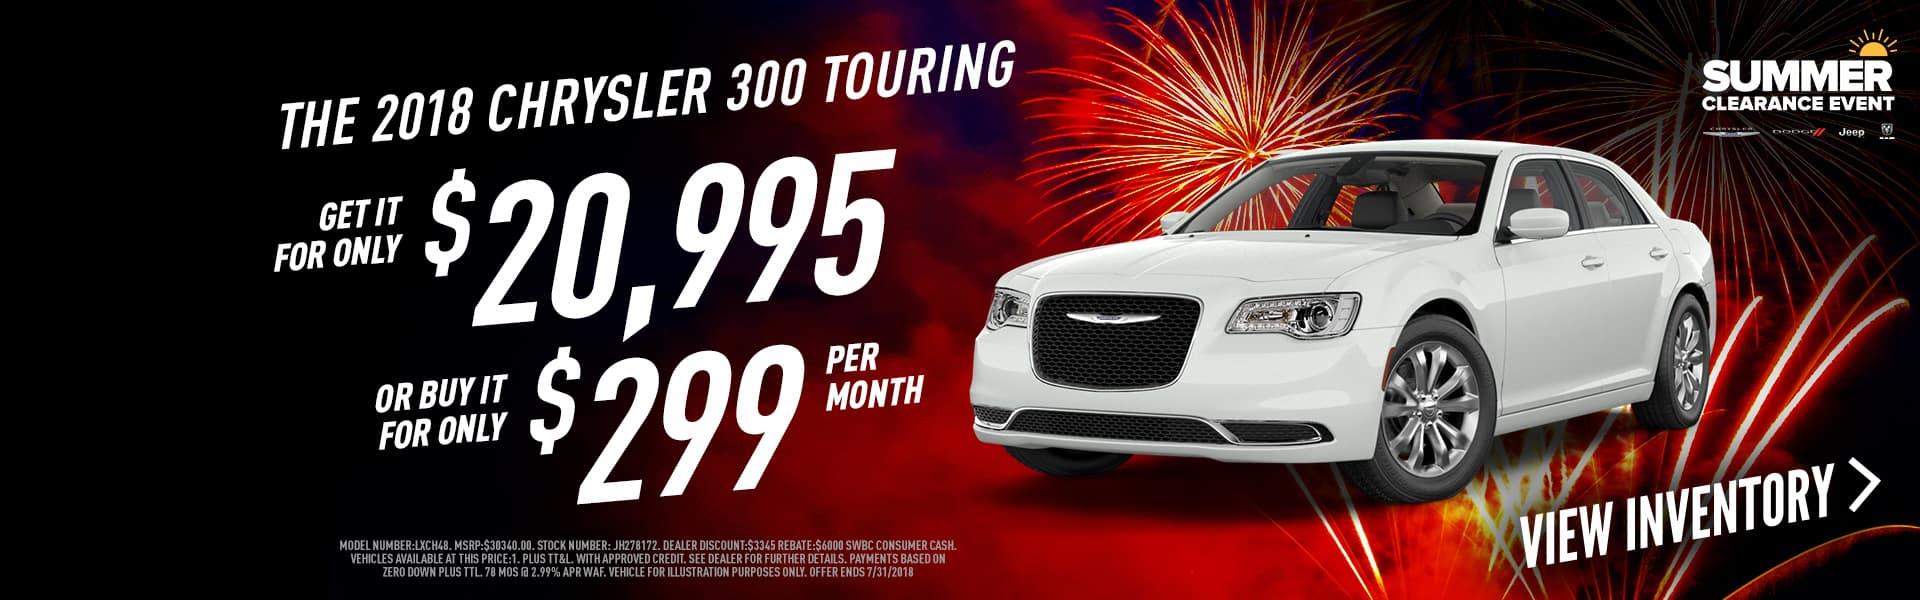 beaumont-tx-2018-chrysler=300-touring-for-sale